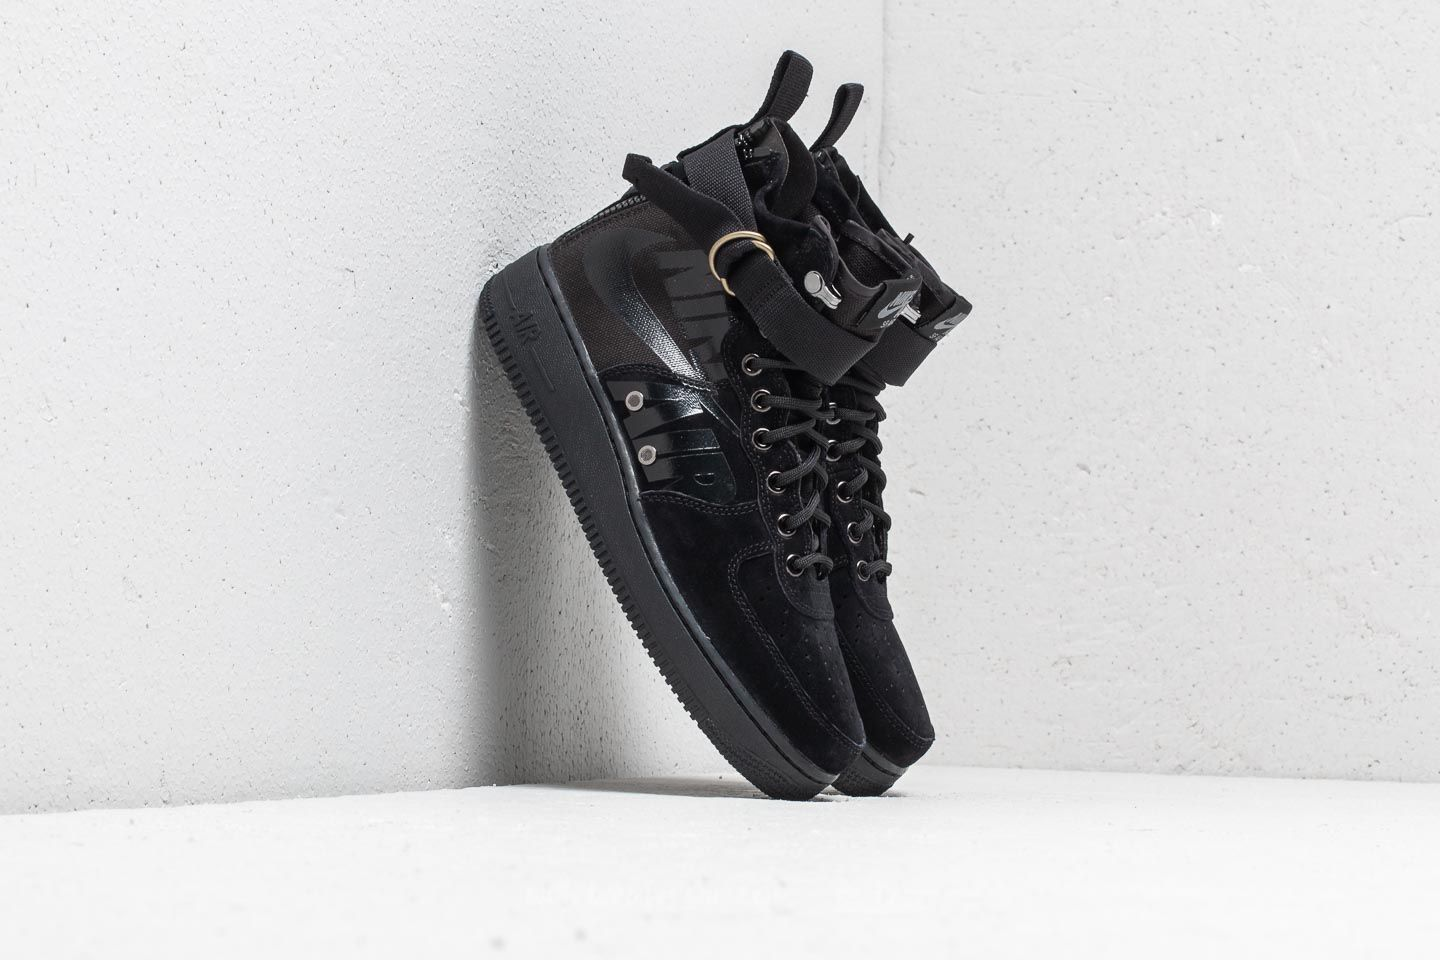 Nike SF Air Force 1 Mid Black Black Cool Grey | Footshop